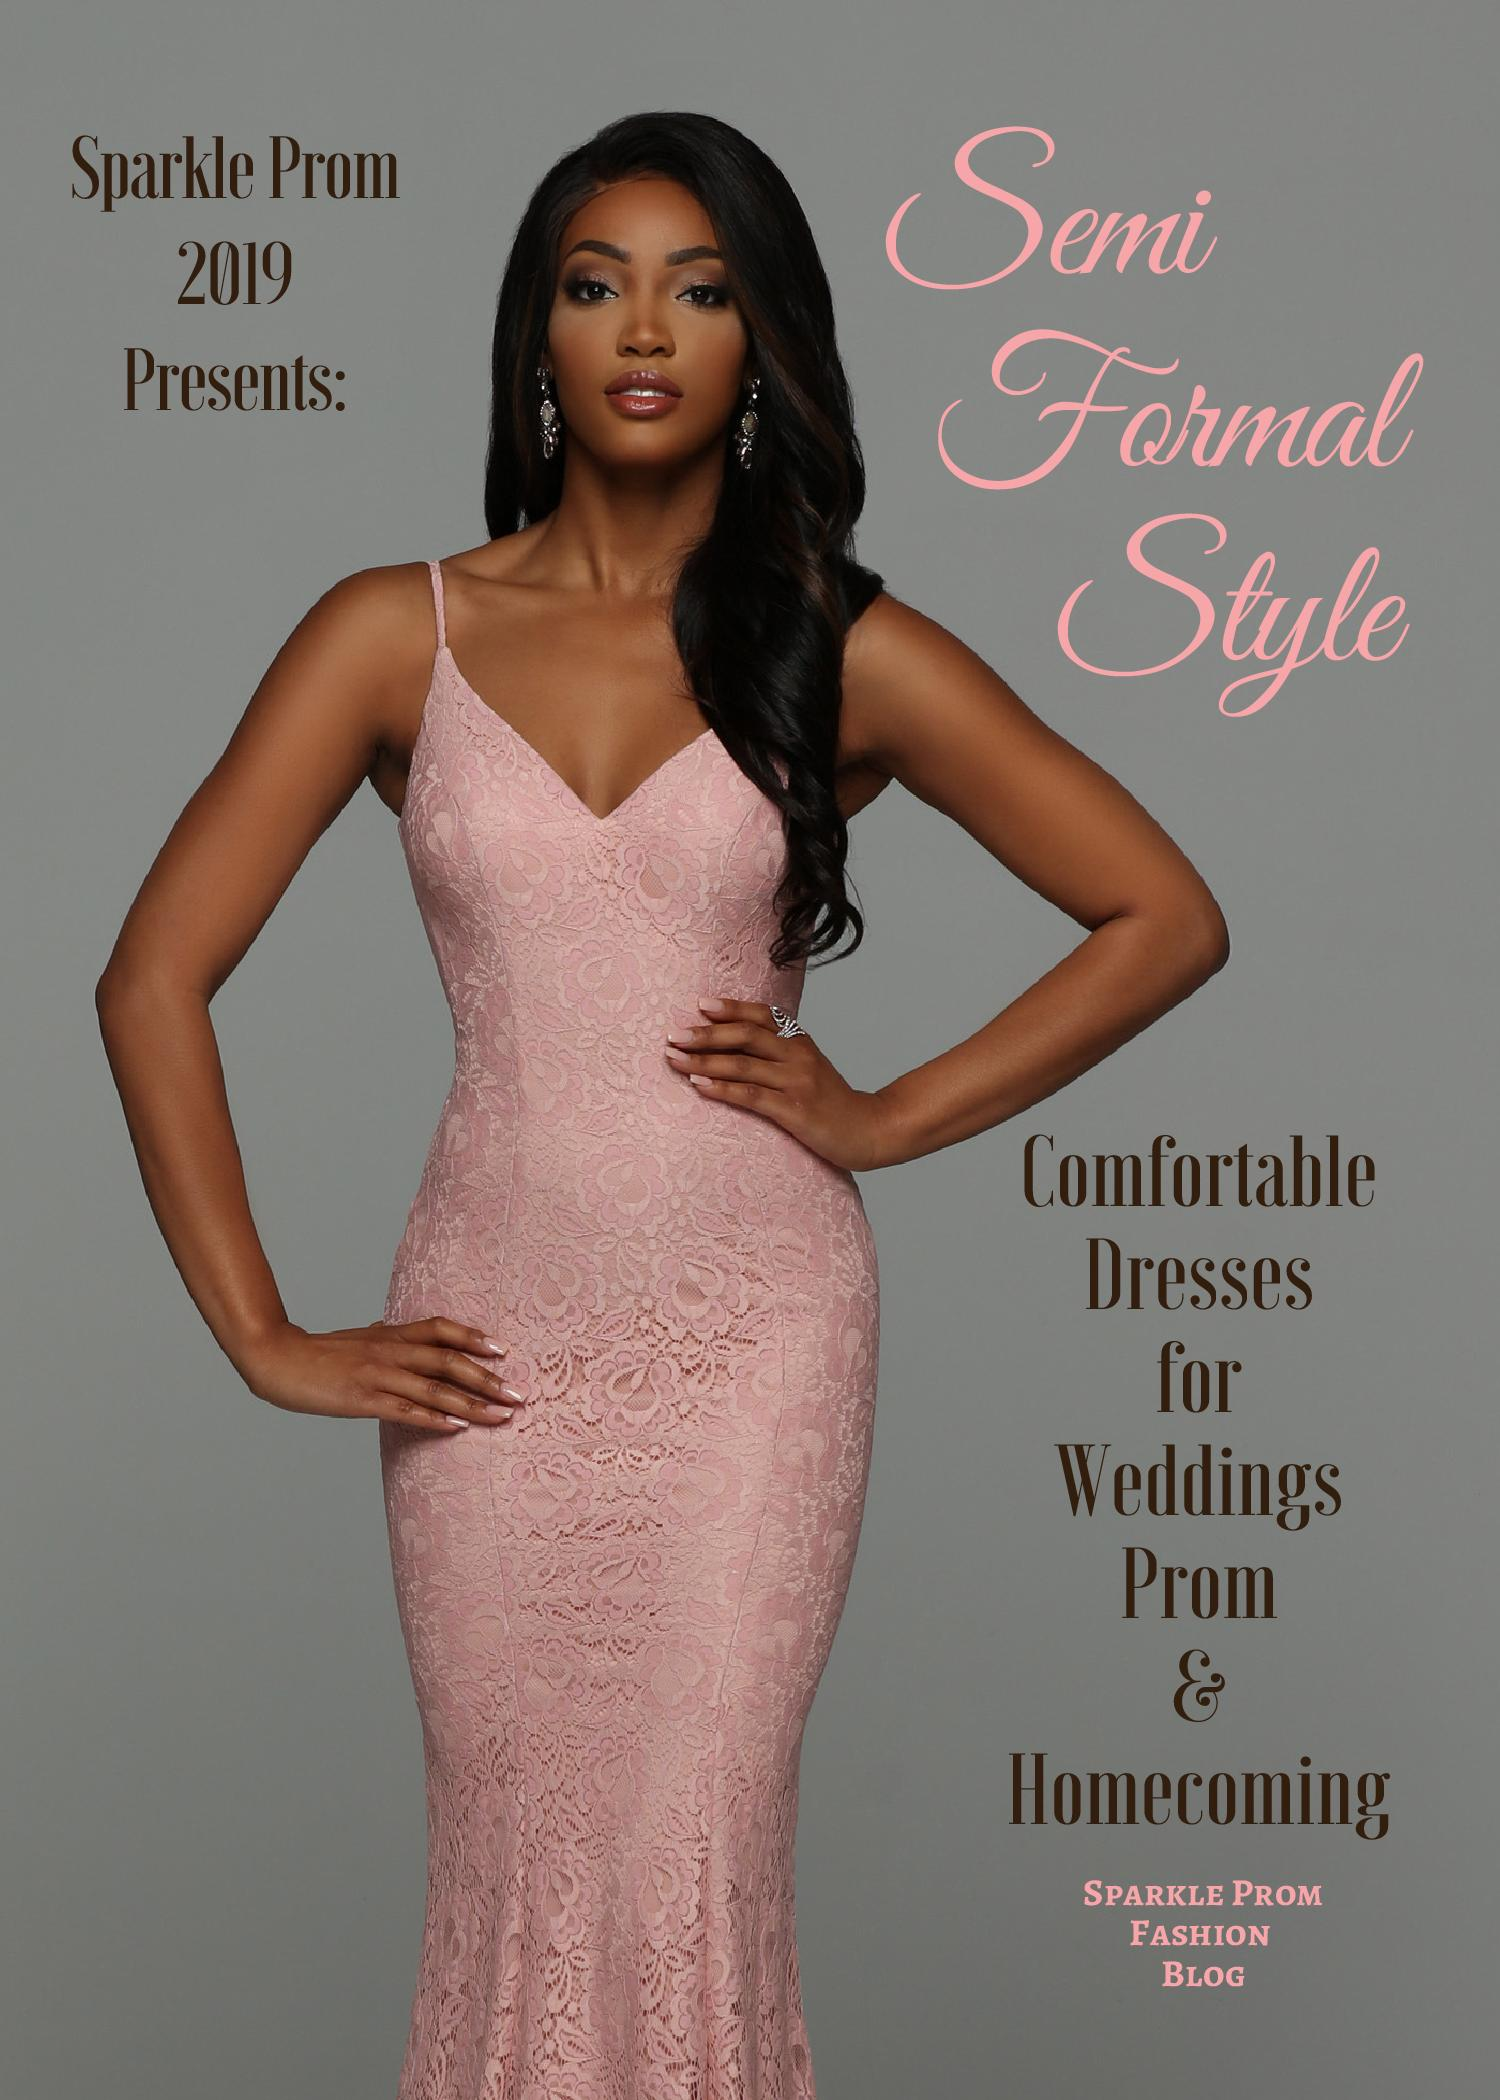 Semi Formal Dresses for Wedding Guests, Prom & Homecoming – Sparkle Prom Fashion Blog